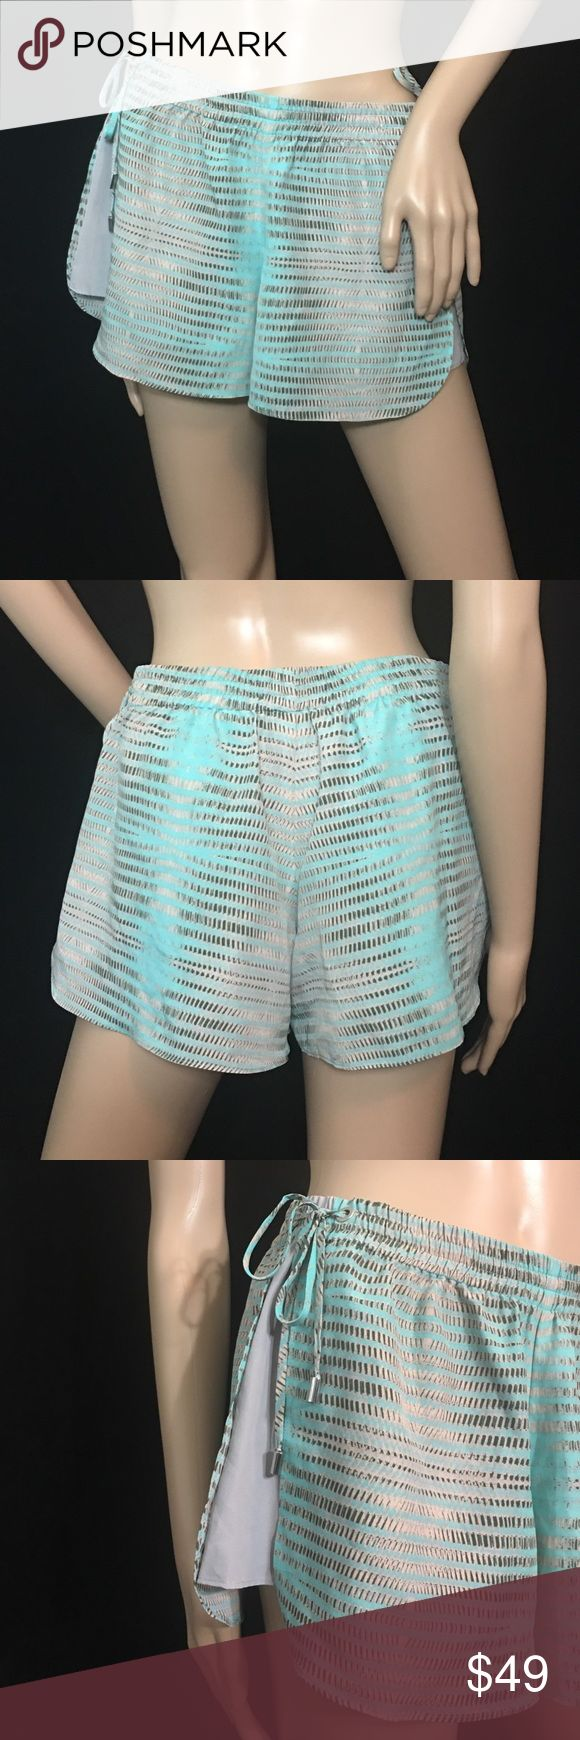 Armani Exchange Shorts Great shorts to use as a cover-up at the pool or to dress up for a night out on the town • Has really cute drawstring ties at both sides of the hips • Lightweight polyester material • Like new • Release date: Summer 2013 •Size is 0, but would fit a 3/4 to 7/8 pant size • Colors are turquoise & grey Armani Exchange Shorts